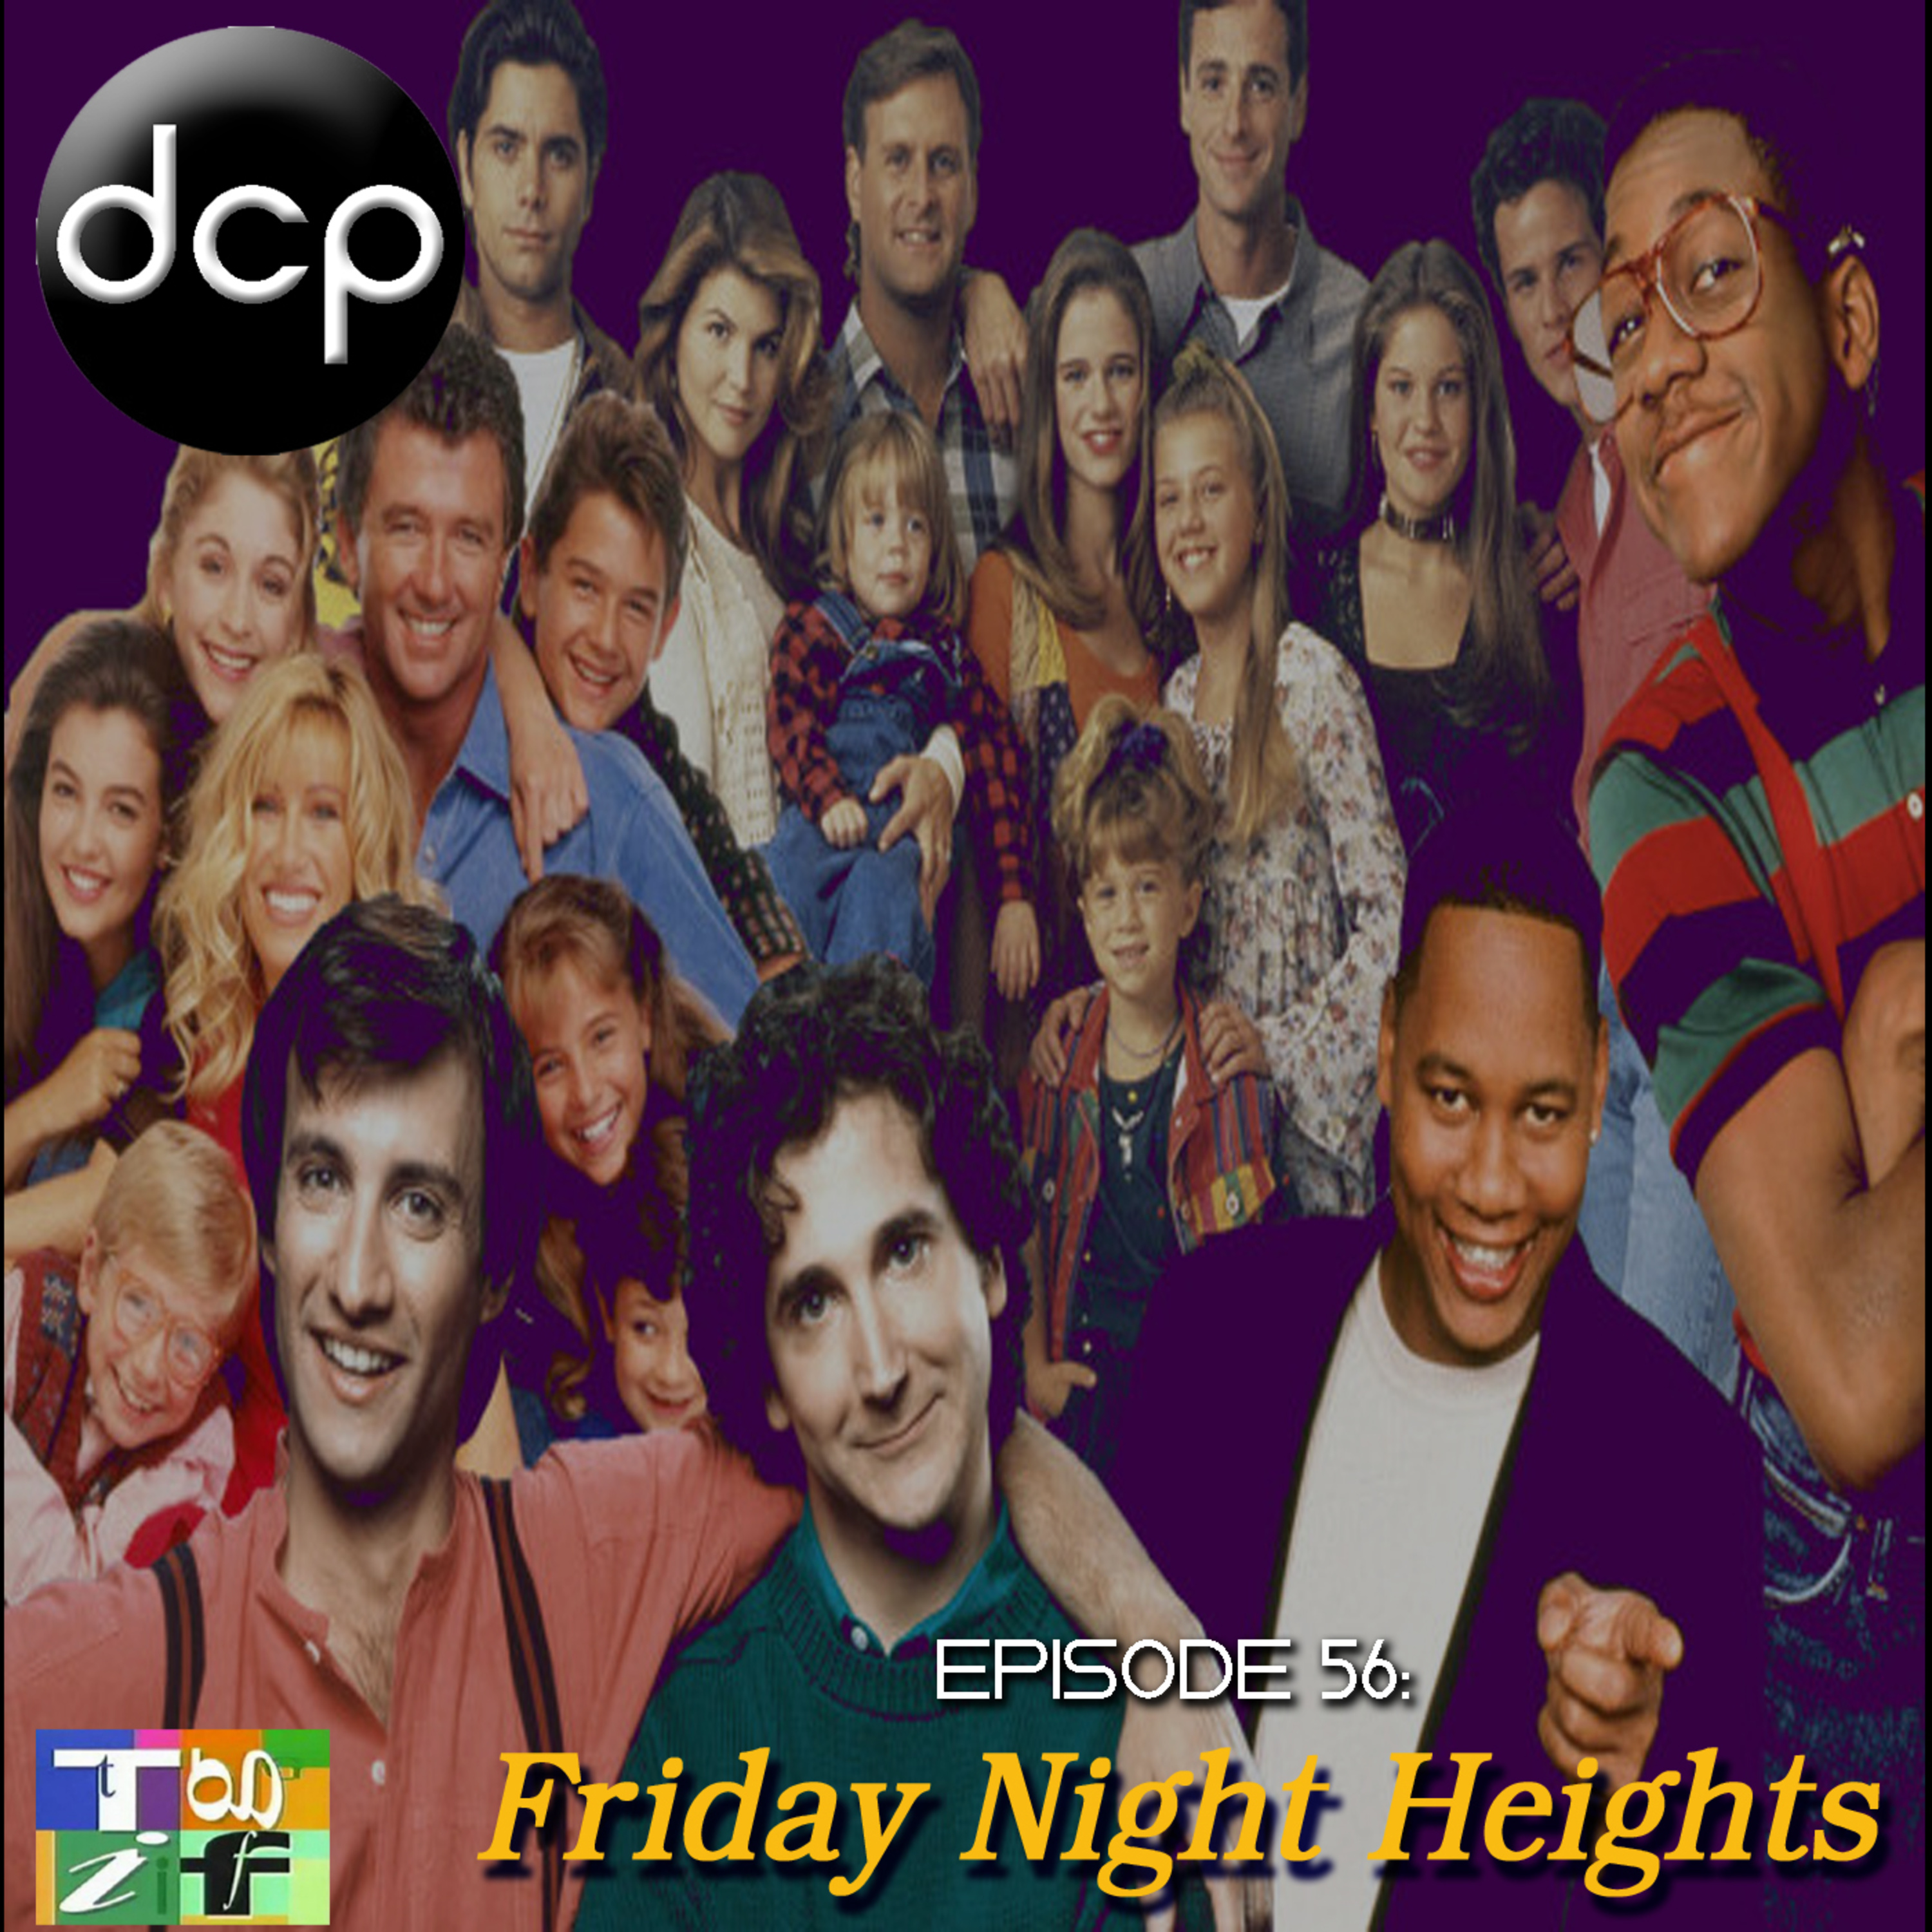 Episode 56 - Friday Night Heights